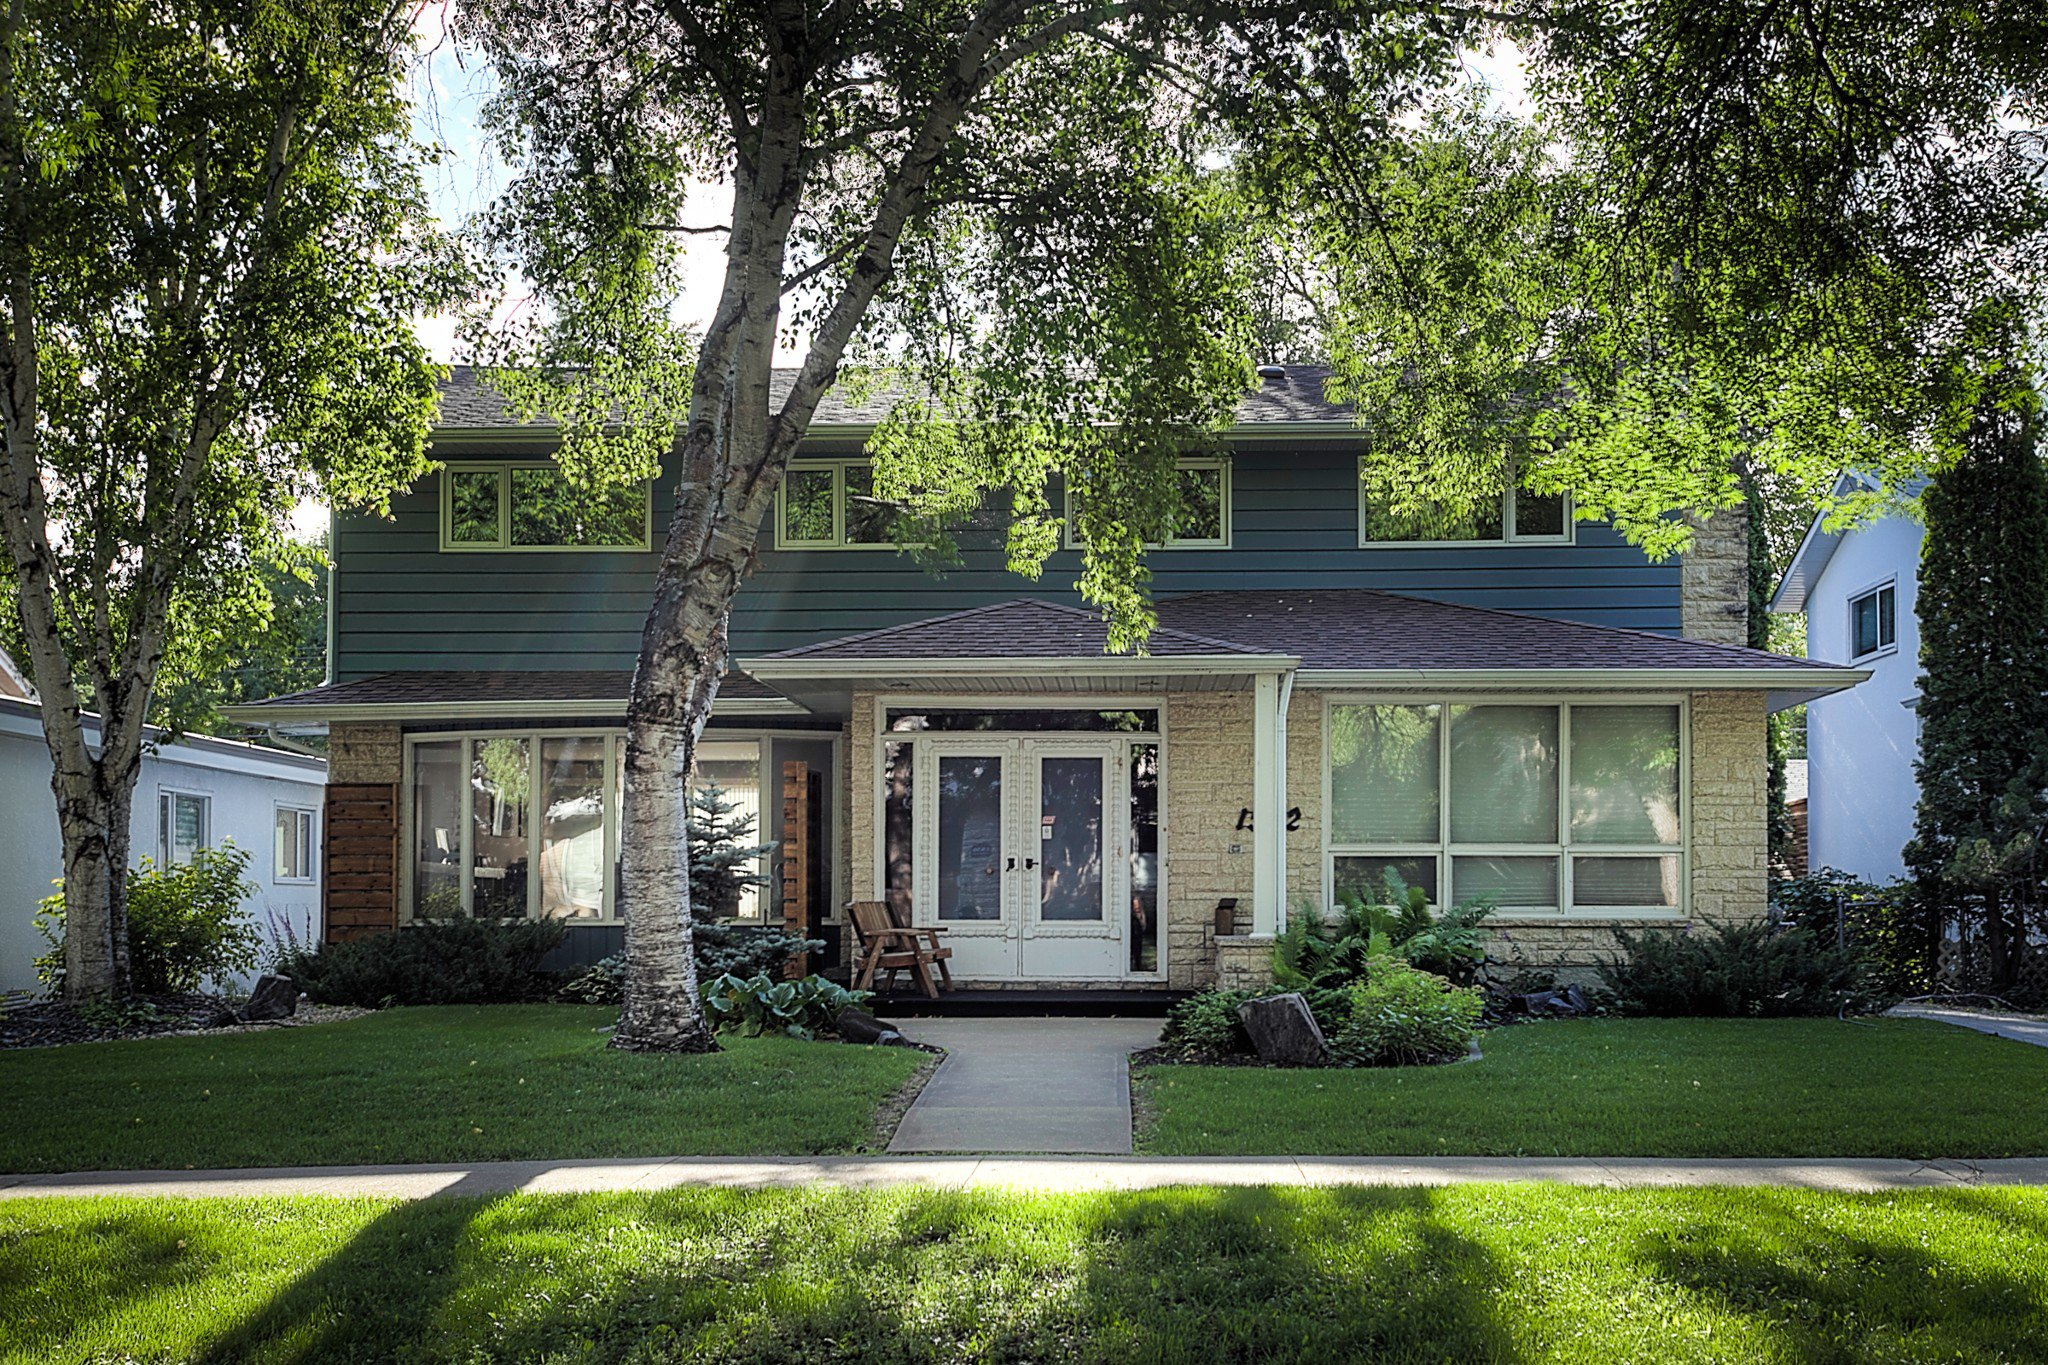 Main Photo: 1532 Mathers Bay in Winnipeg: River Heights South Single Family Detached for sale (1D)  : MLS®# 1921582